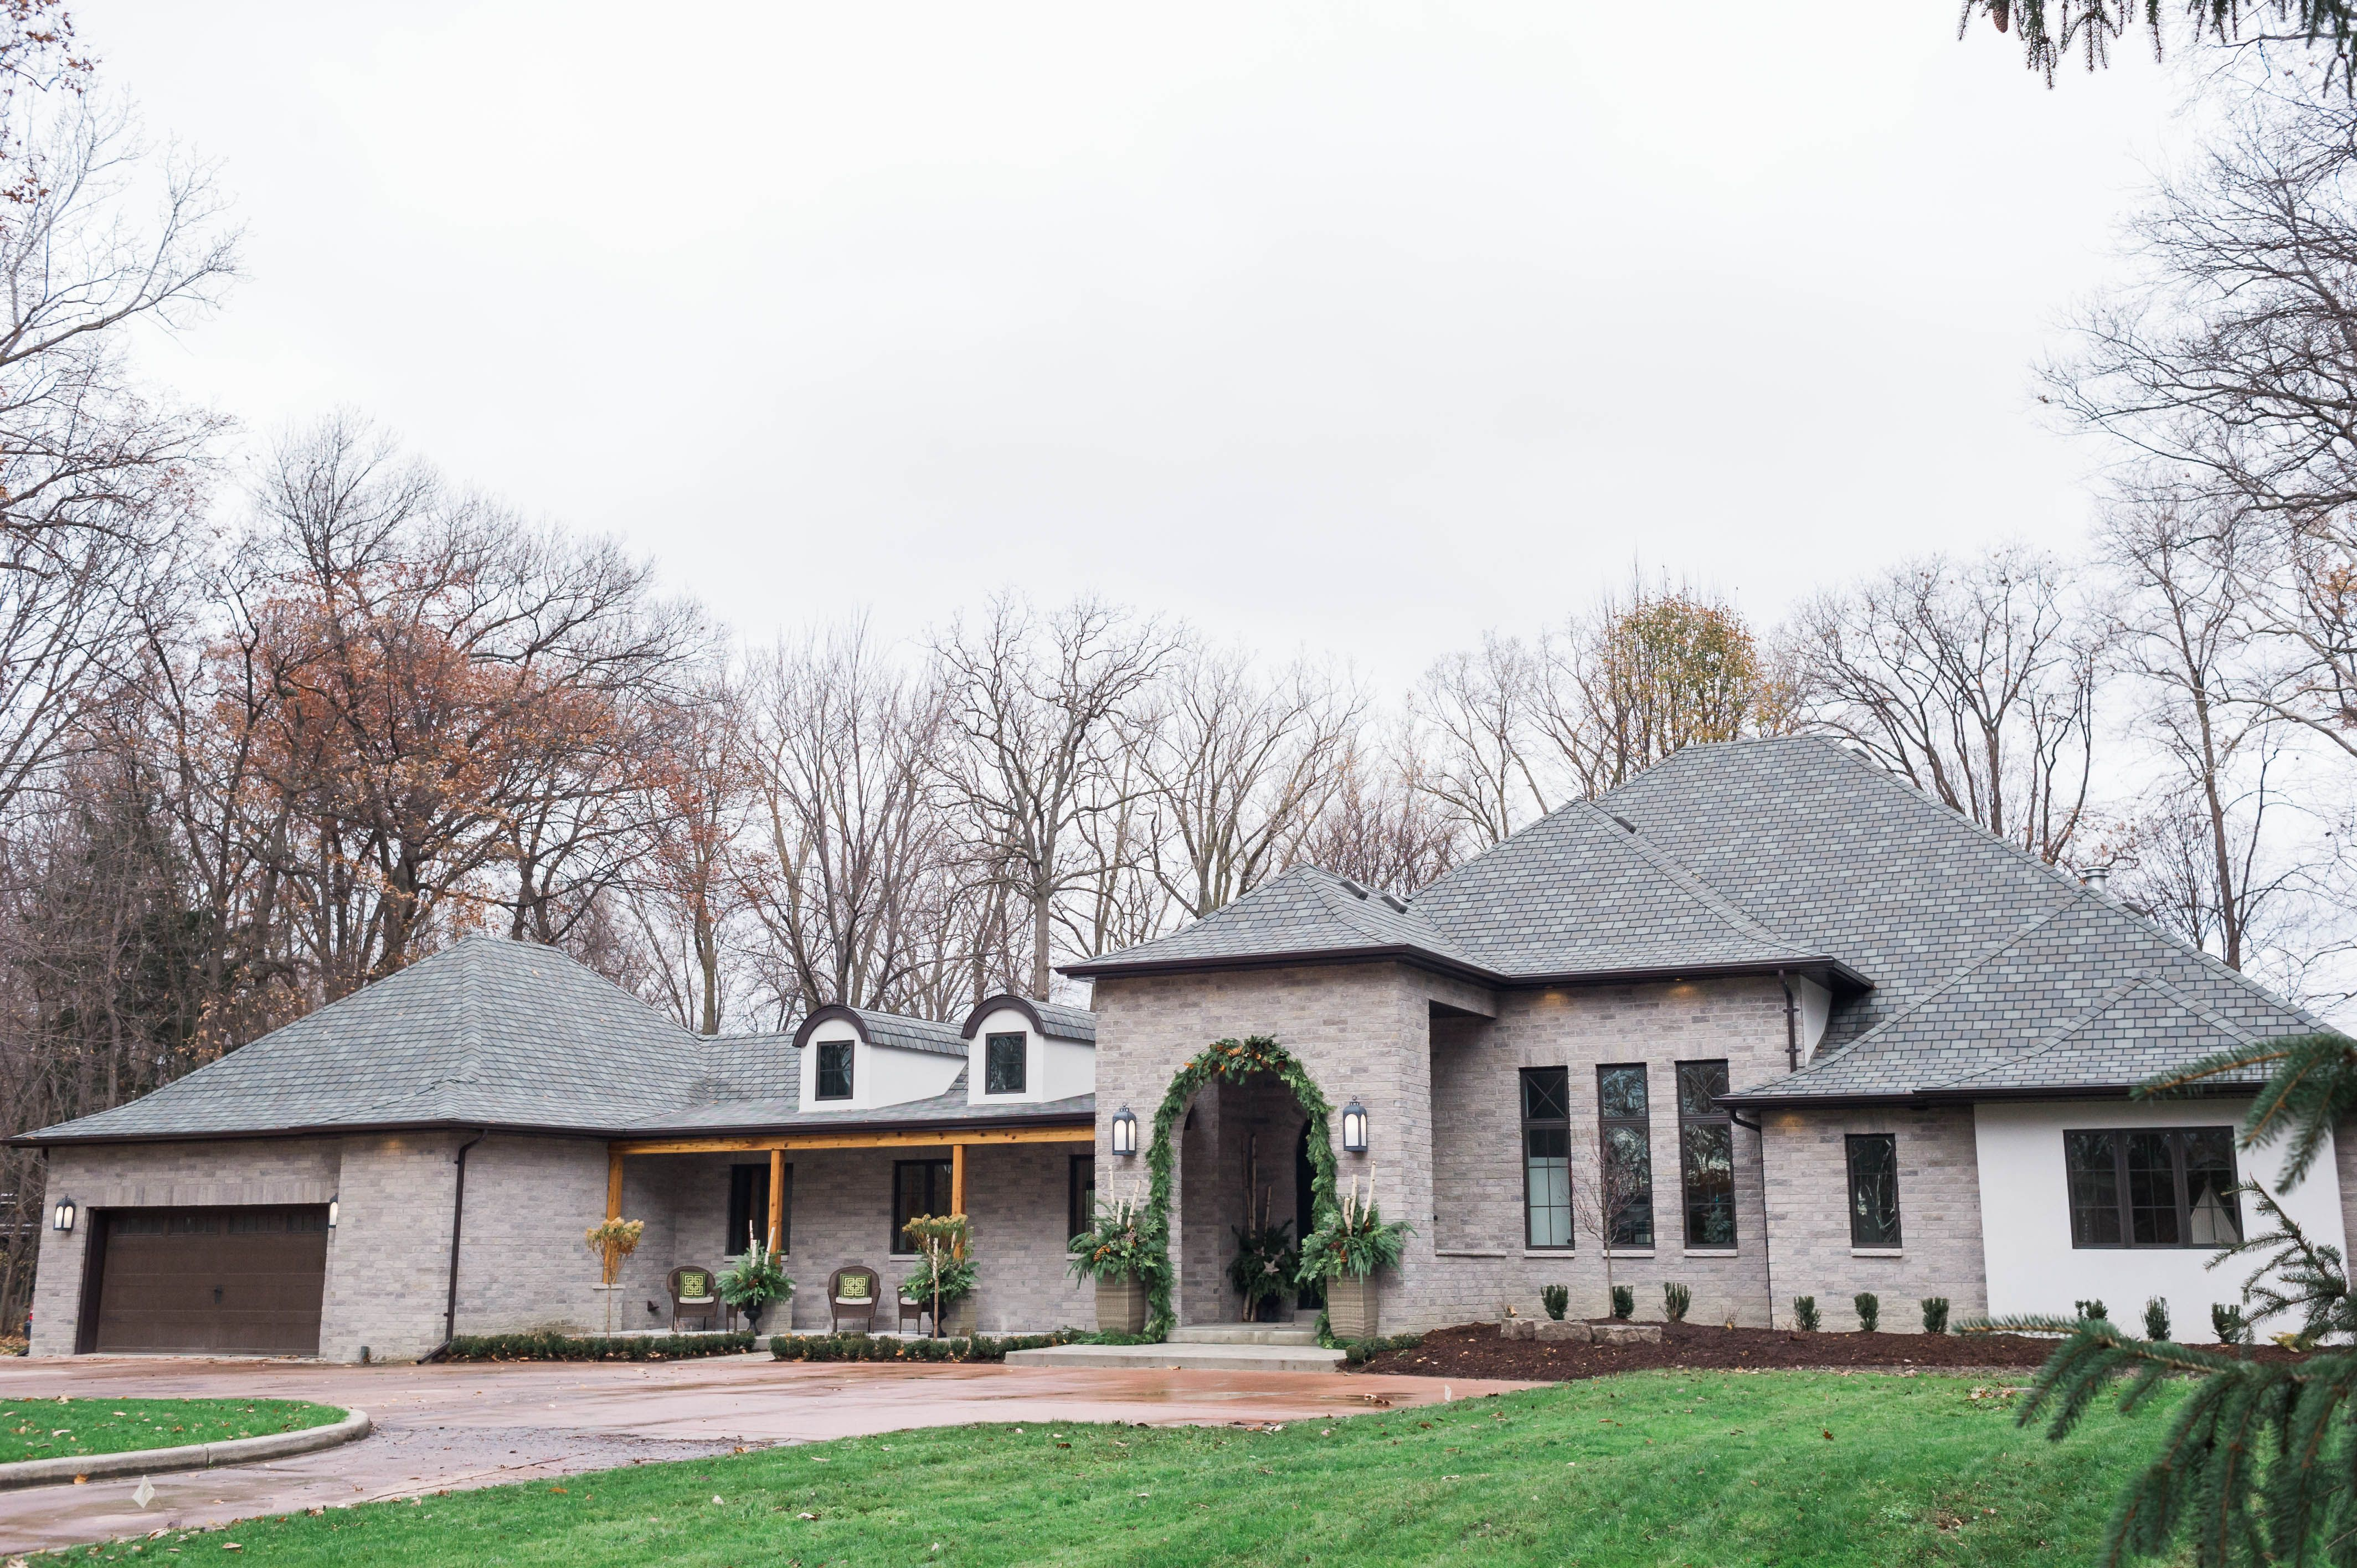 Modern French Country Exterior Renovation Part 2 The Leslie Style French Country Exterior Modern French Country French Country House